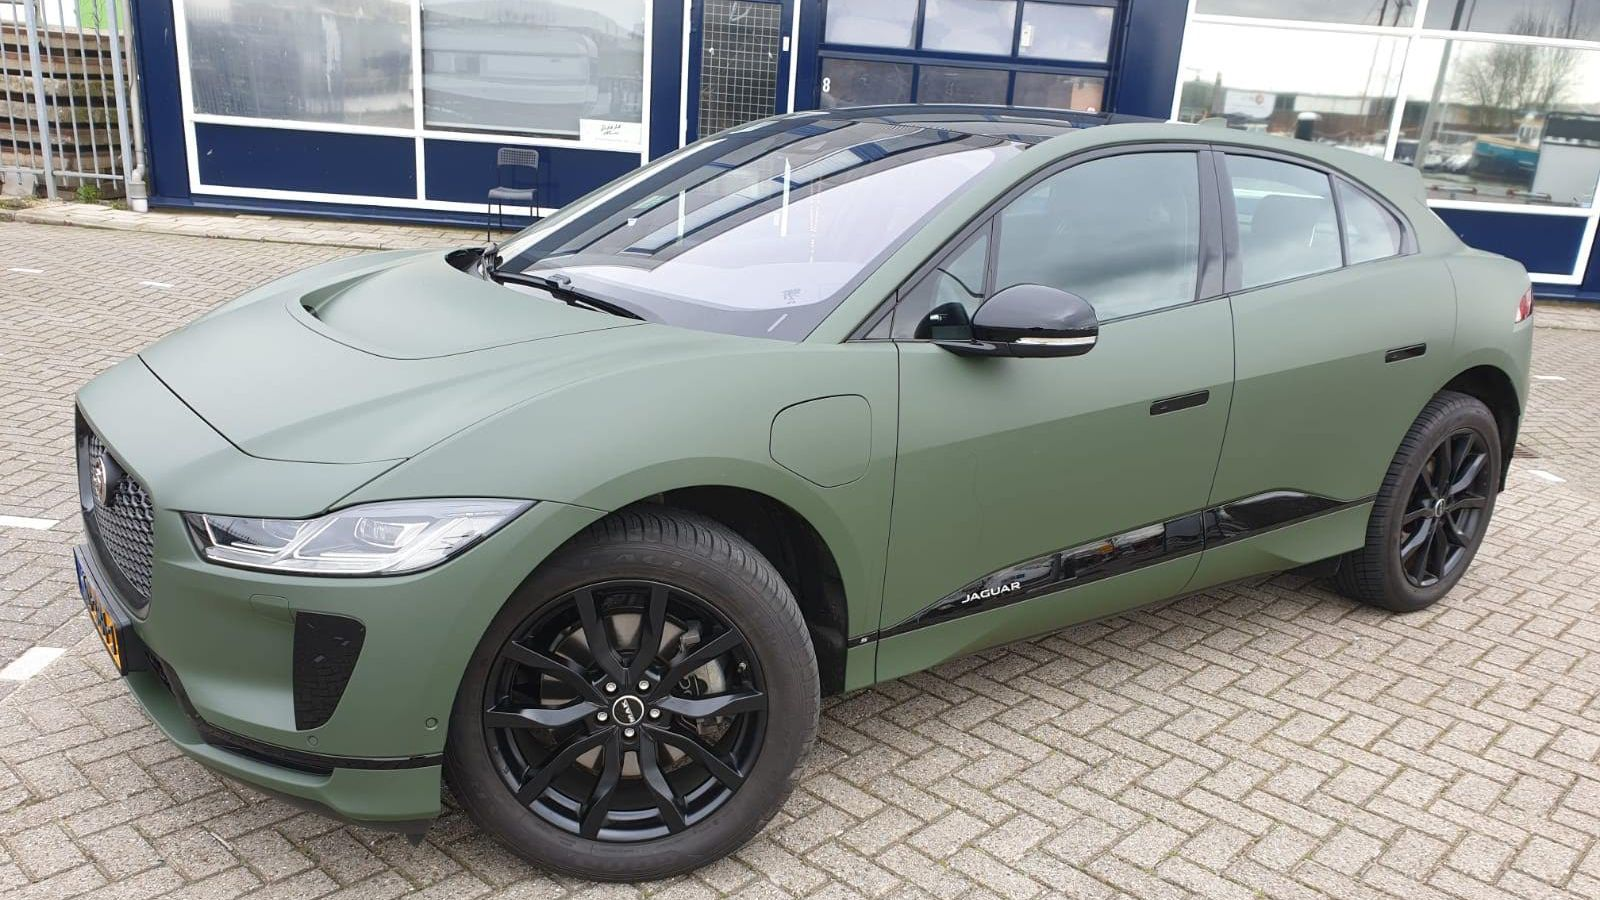 Wrapped In 3m Military Green And Chrome Delete With Avery Black